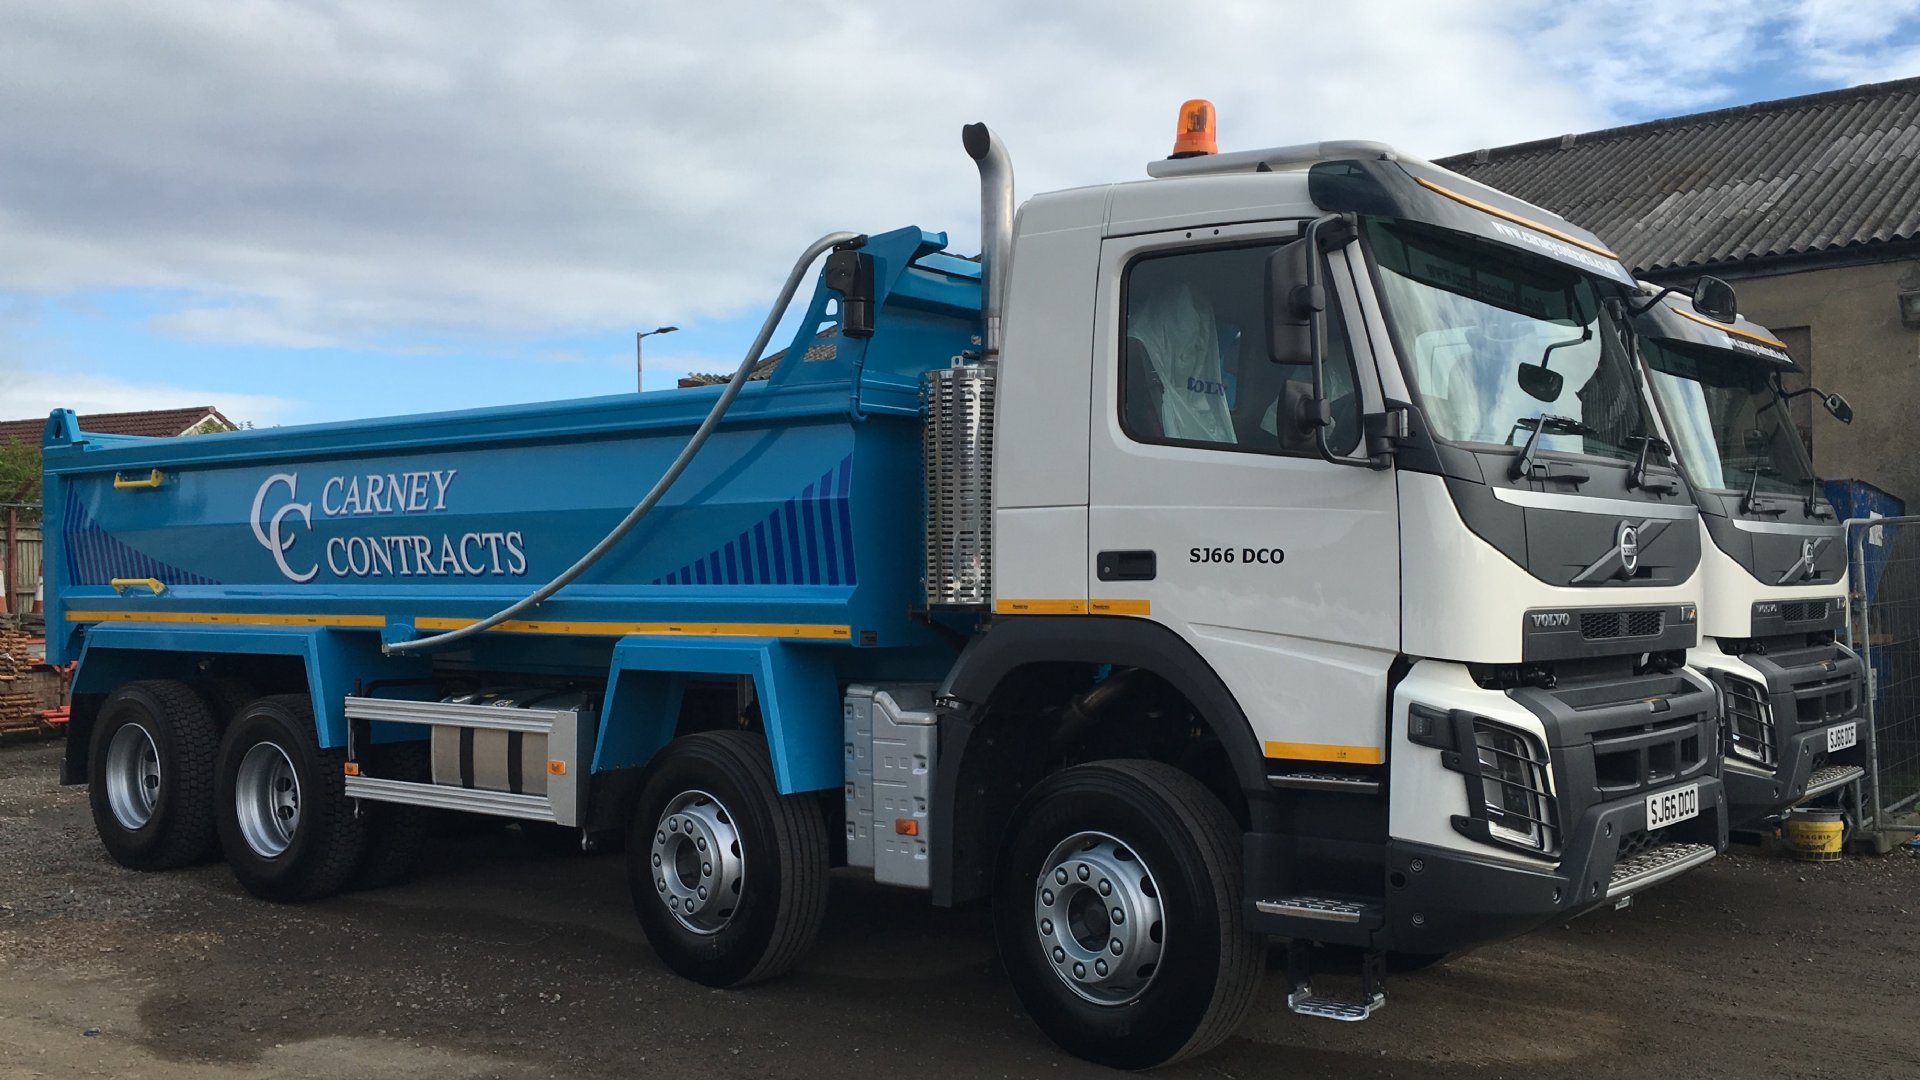 New Acquisitions for our haulage division